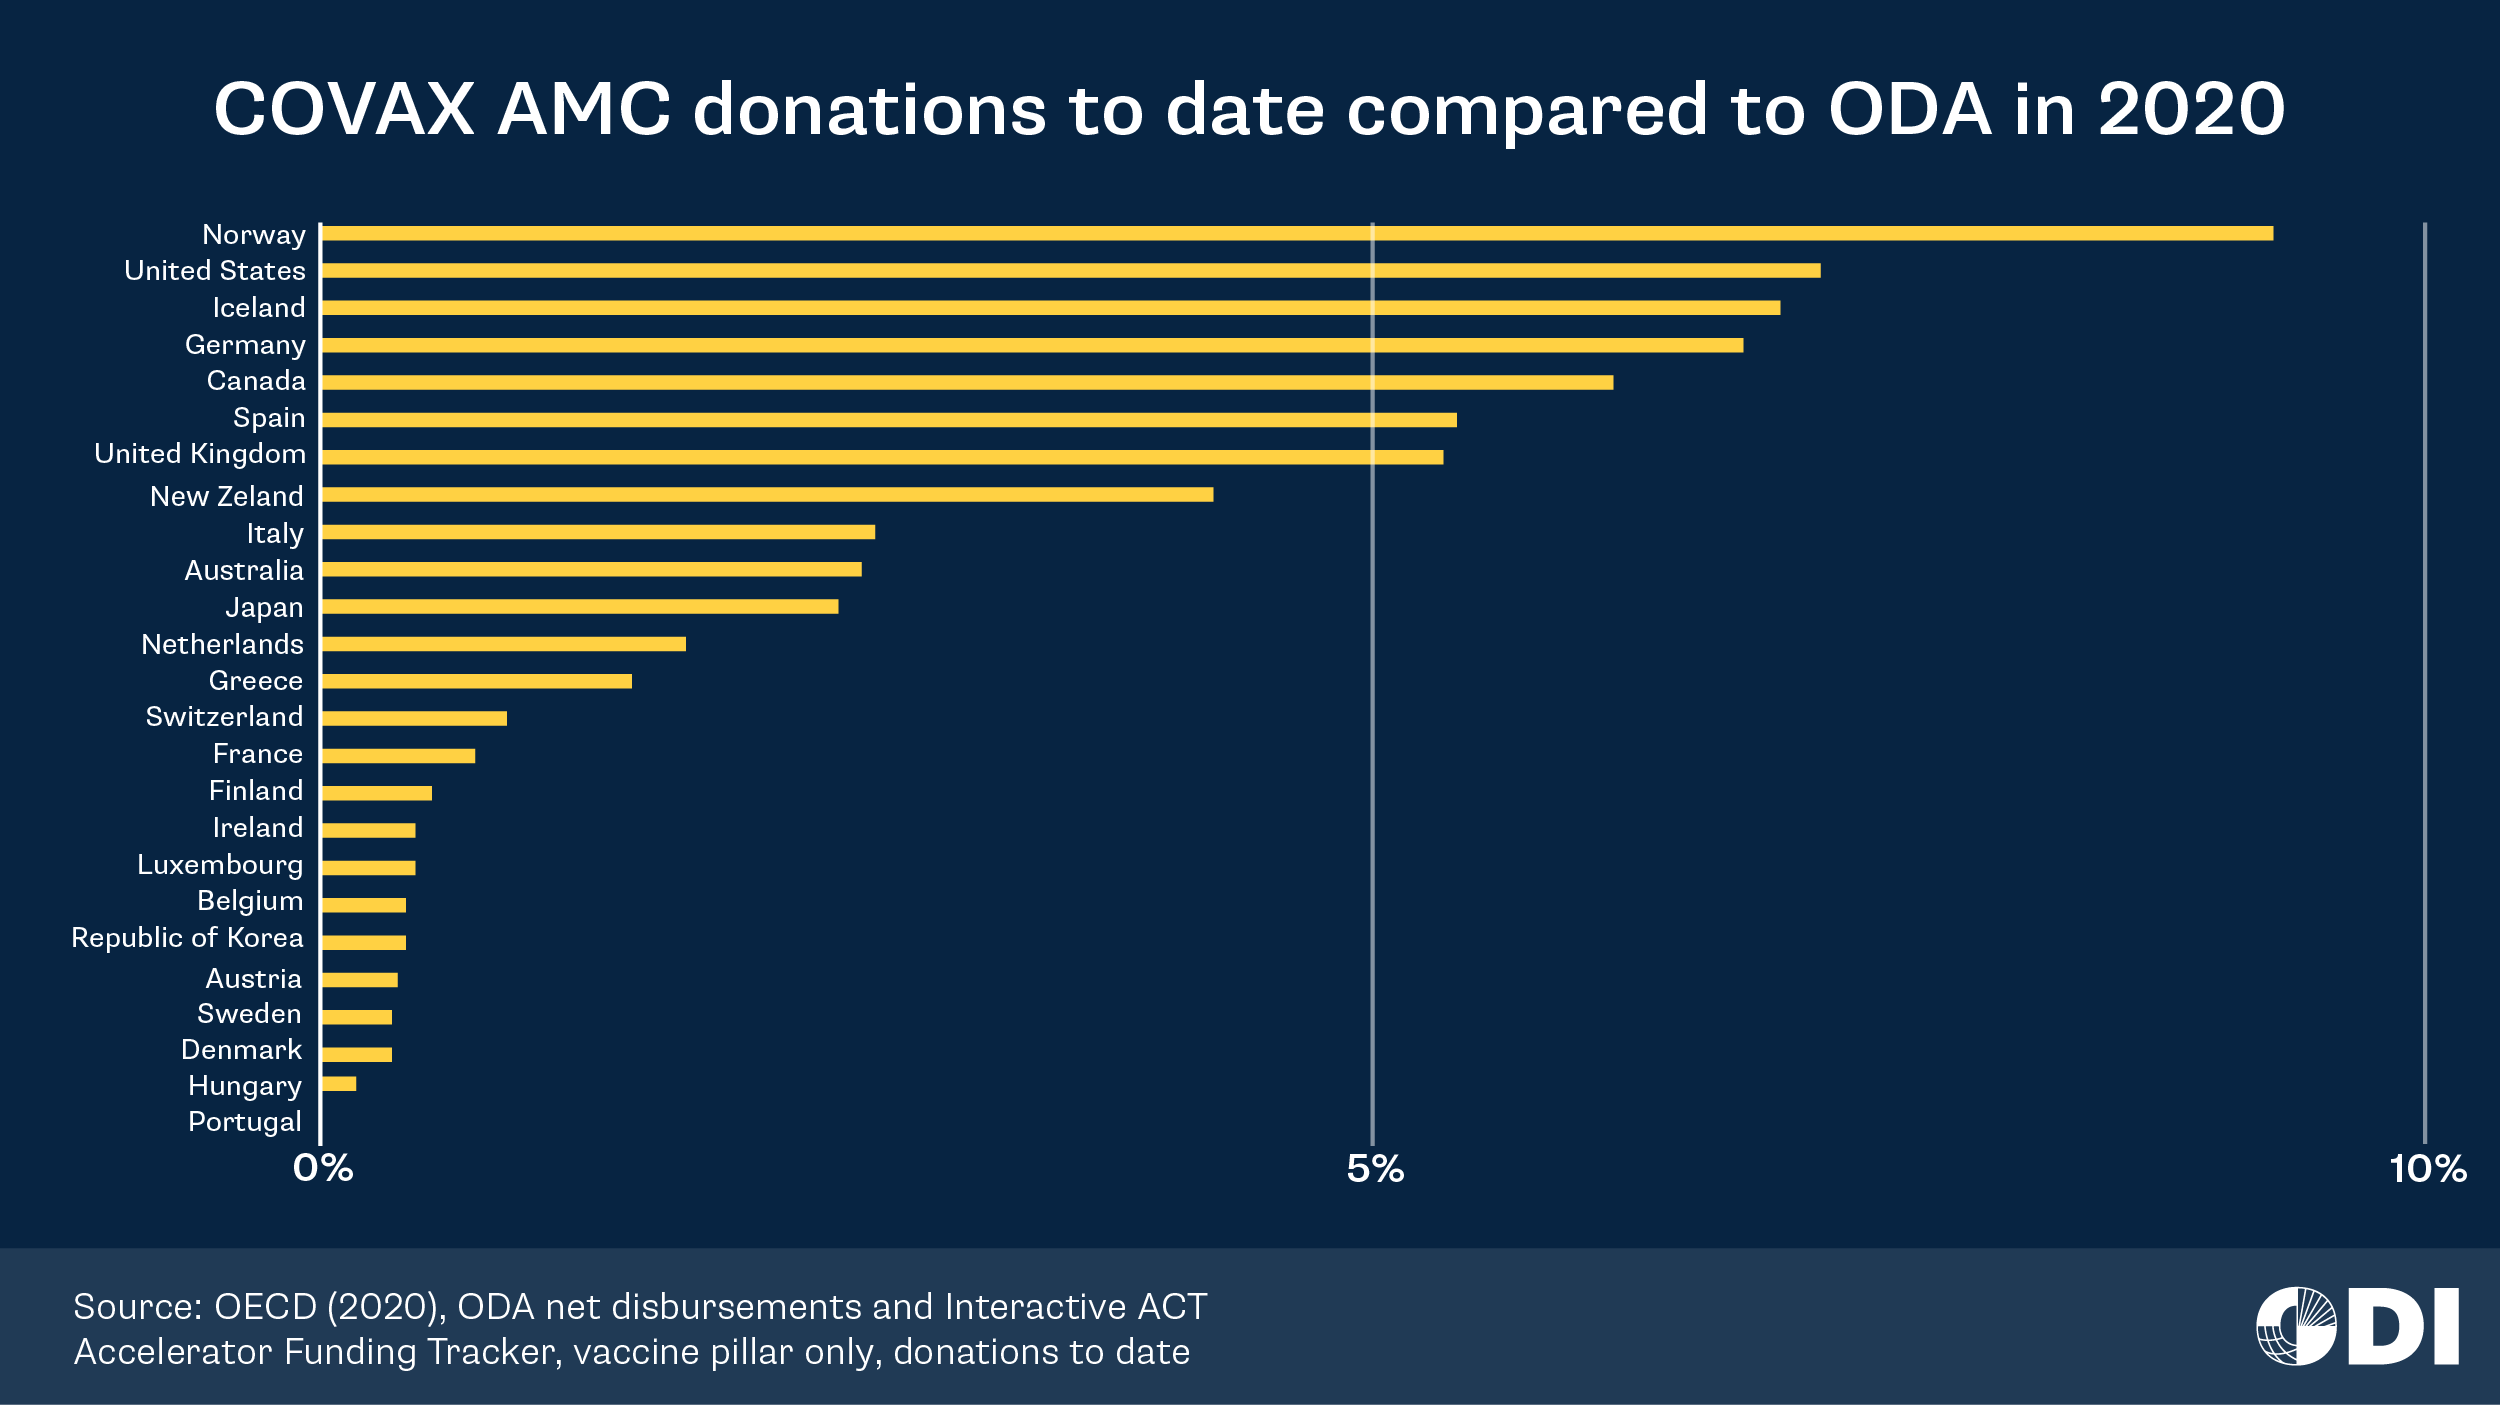 COVAX AMC donations to date compared to ODA in 2020.png